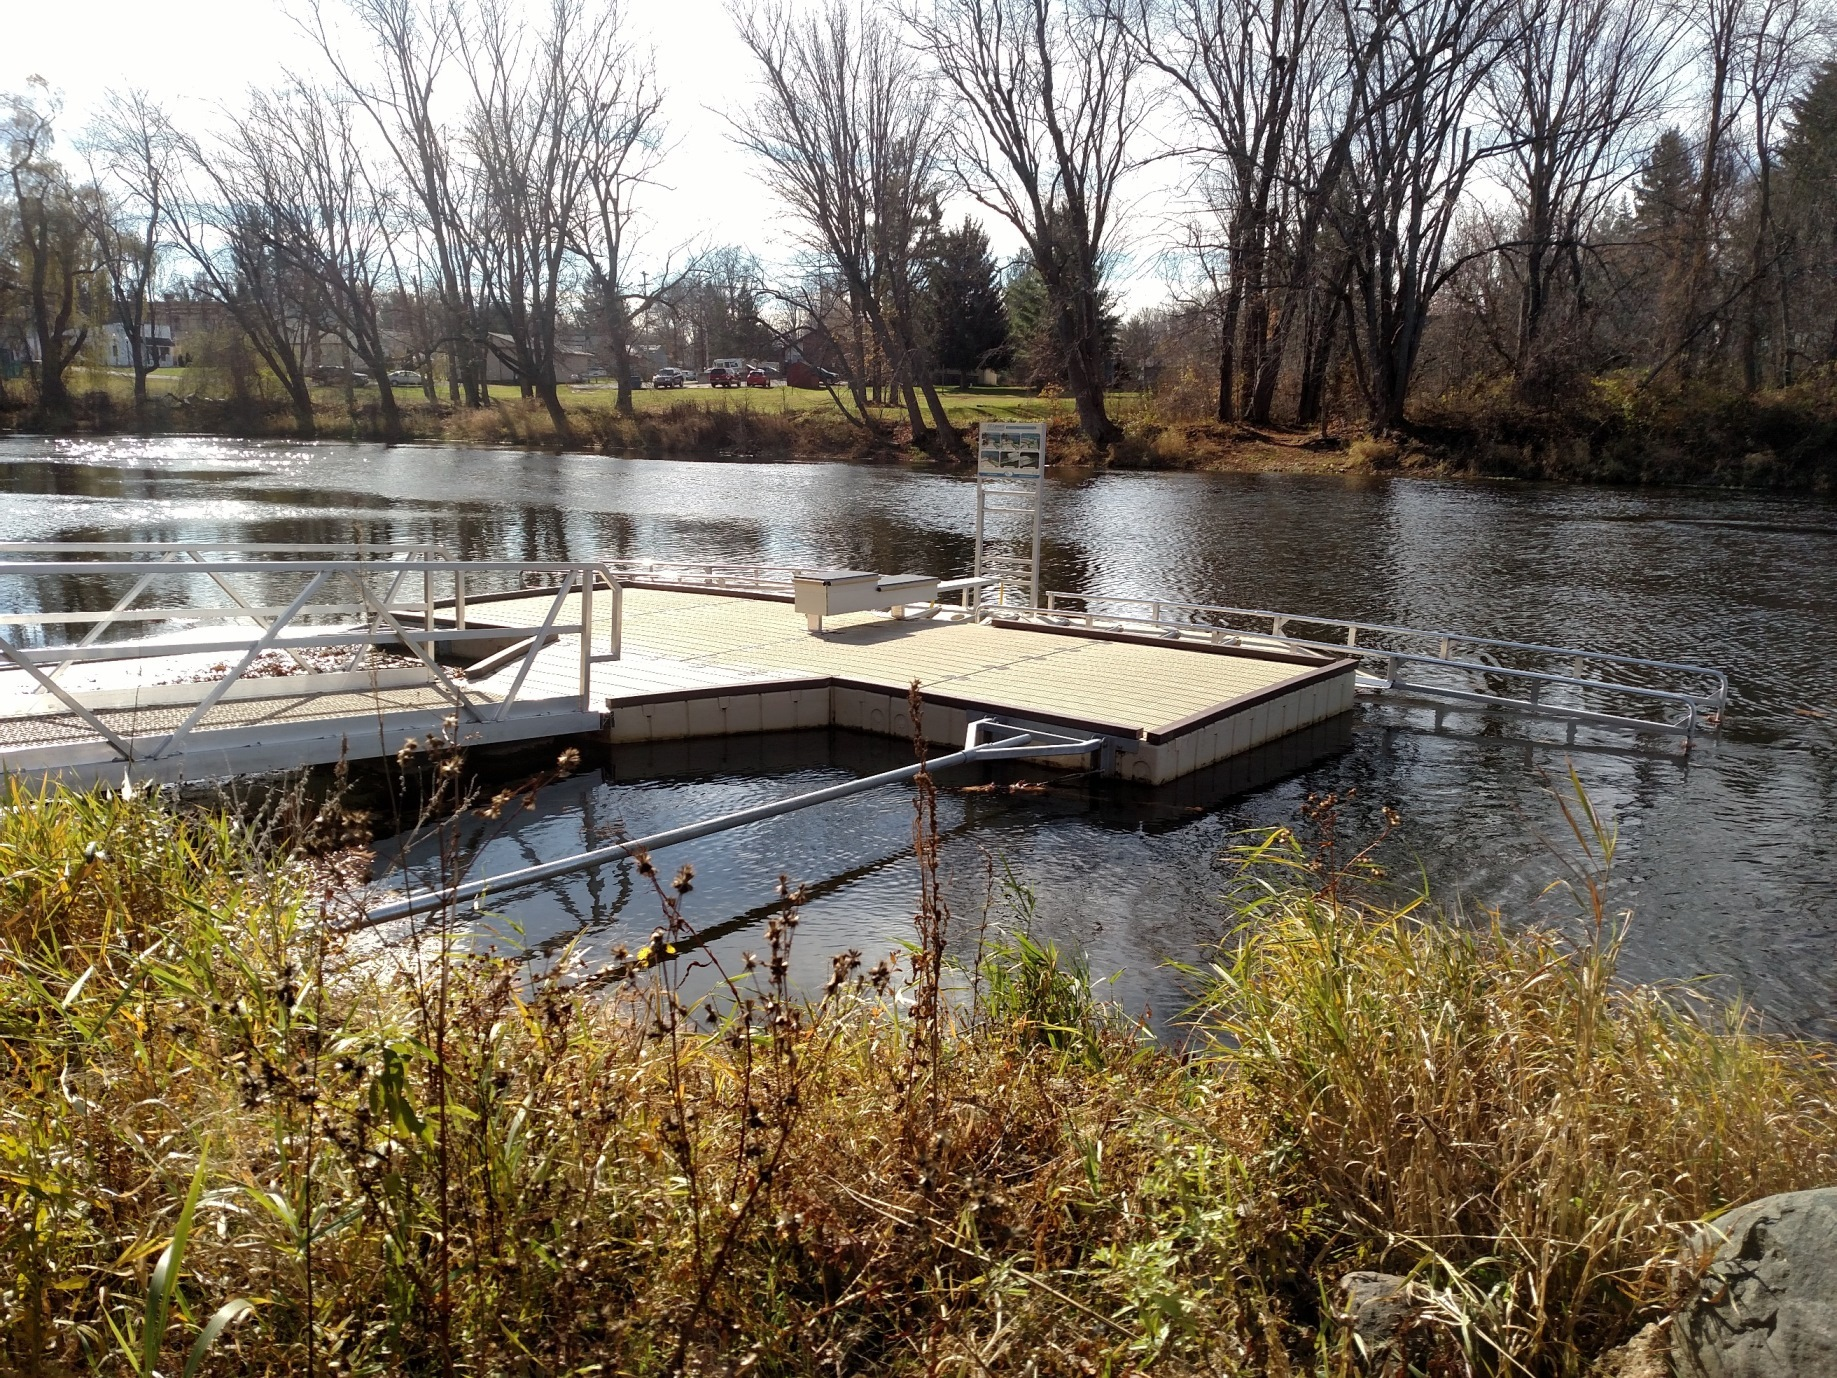 A Michigan Natural Resources Trust Fund project in Dimondale in Eaton County provided a universally accessible canoe/kayak ramp.